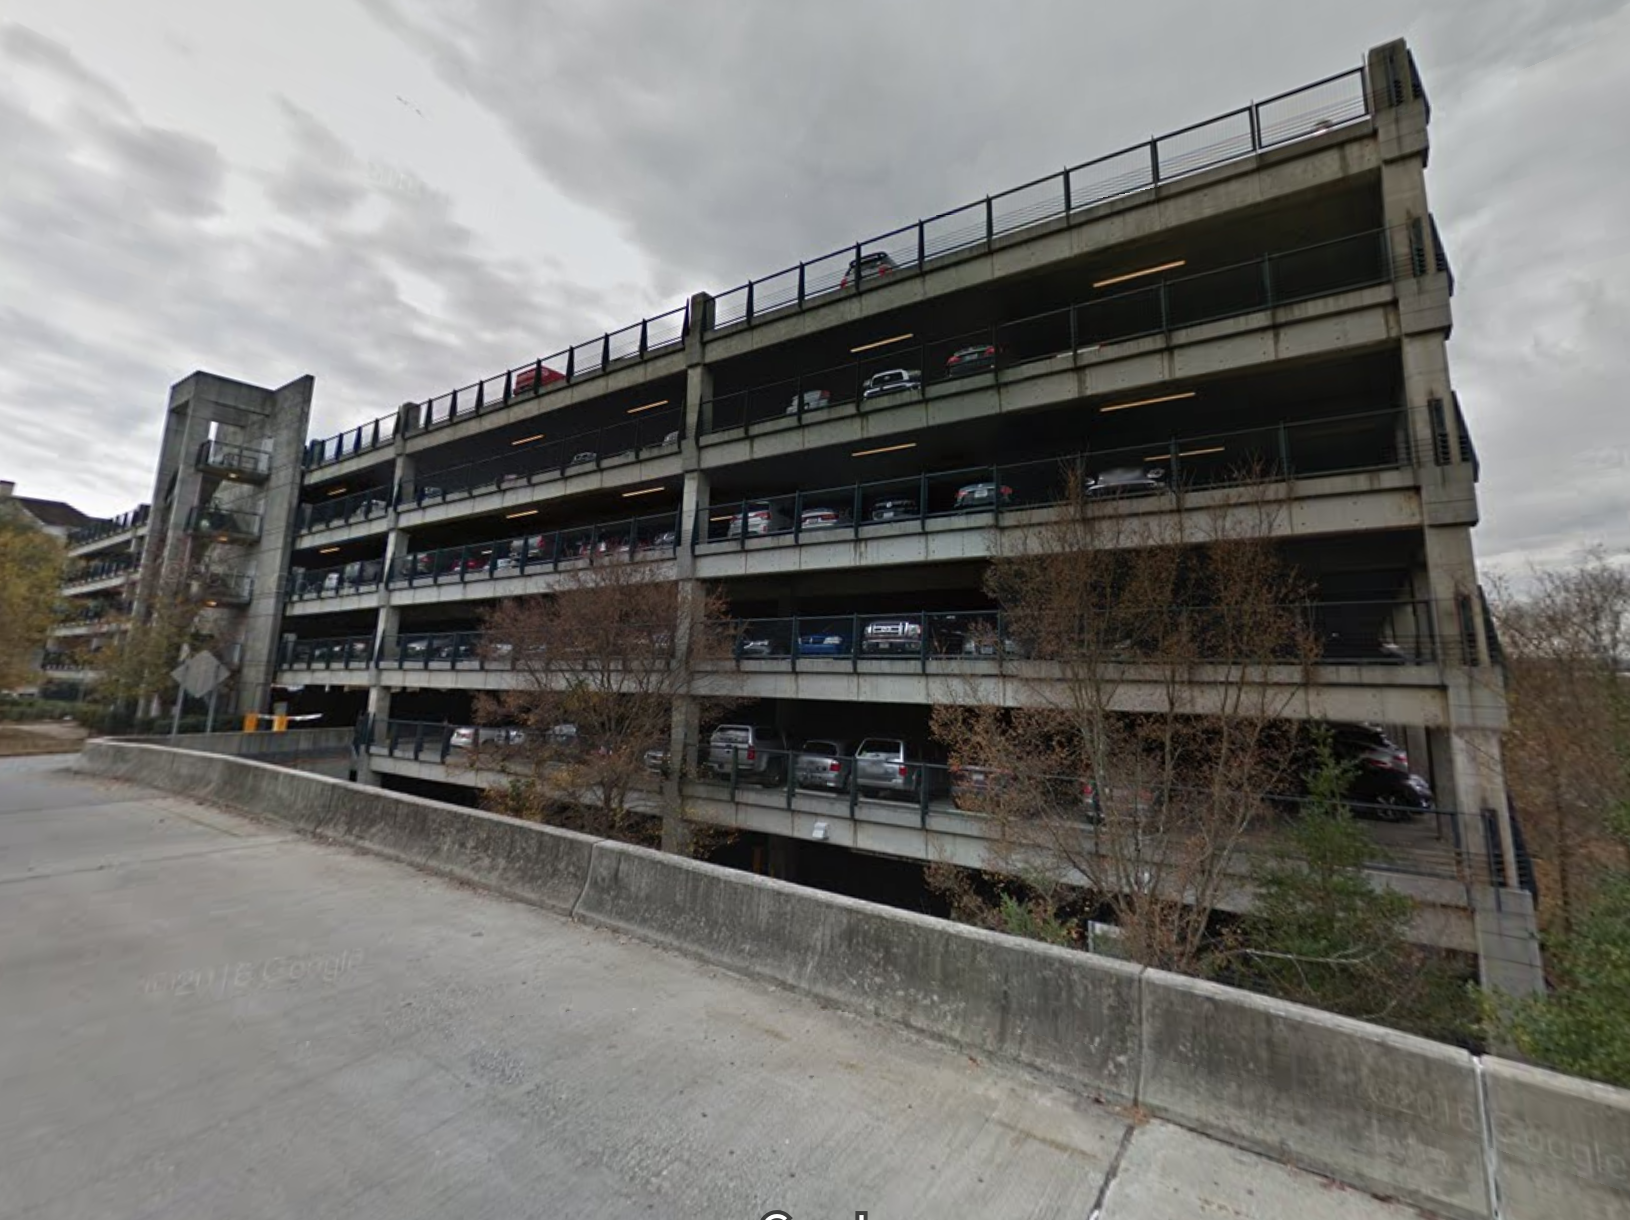 A large parking deck is filled with cars.